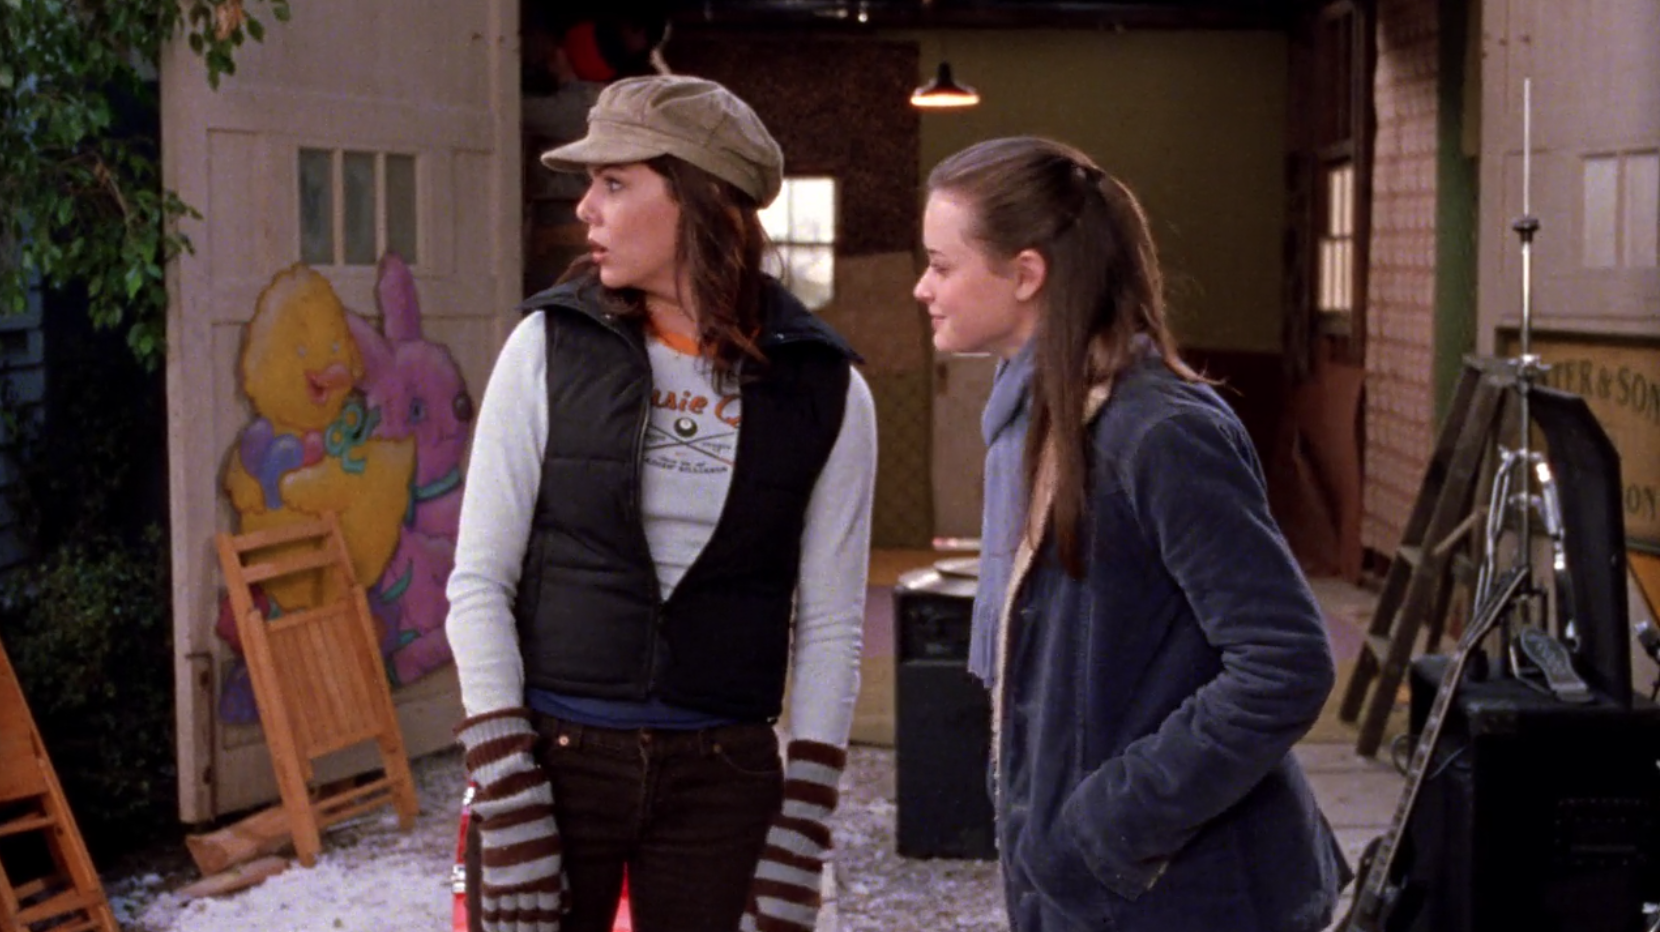 Lorelai-Hideous-Outfit-Lorelai-Out-of-Water-Gilmore-Girls